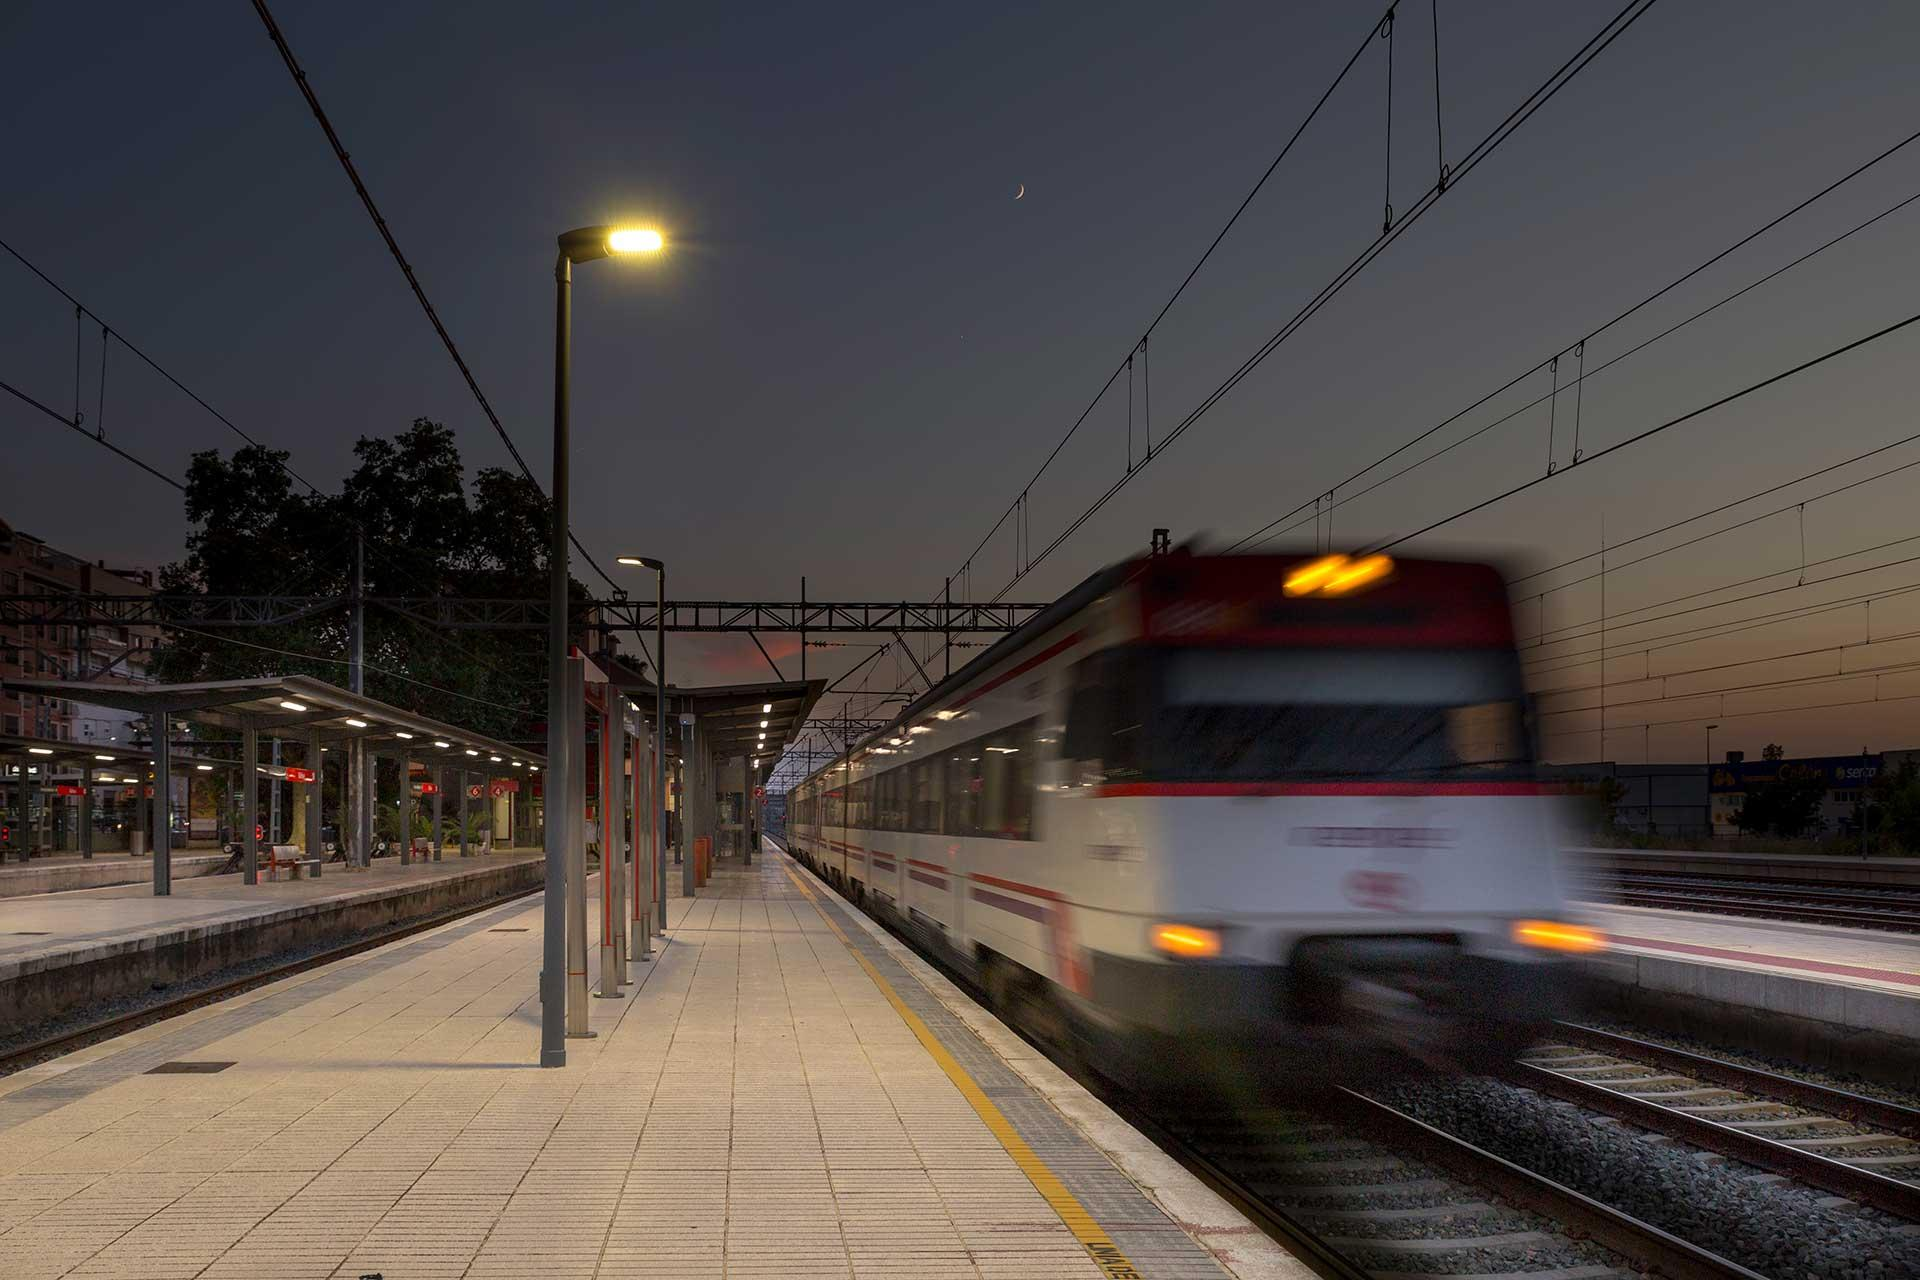 Teceo improves the customer experience while cutting costs for RENFE railway network